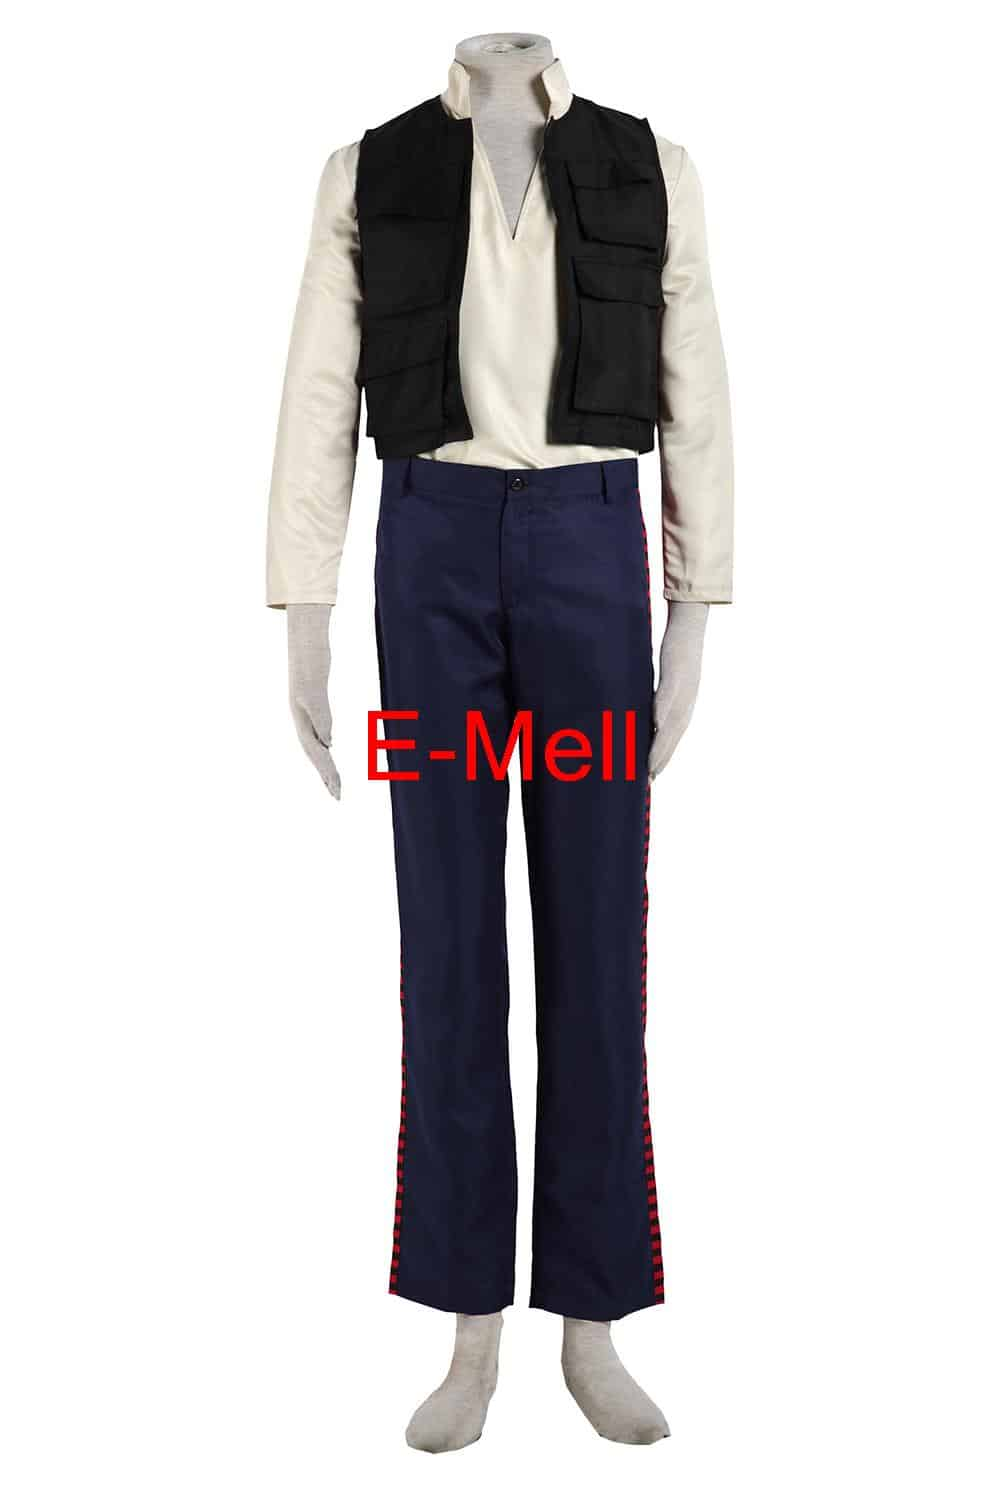 Star Han Solo Cosplay Costume Halloween Costumes Men Full Set